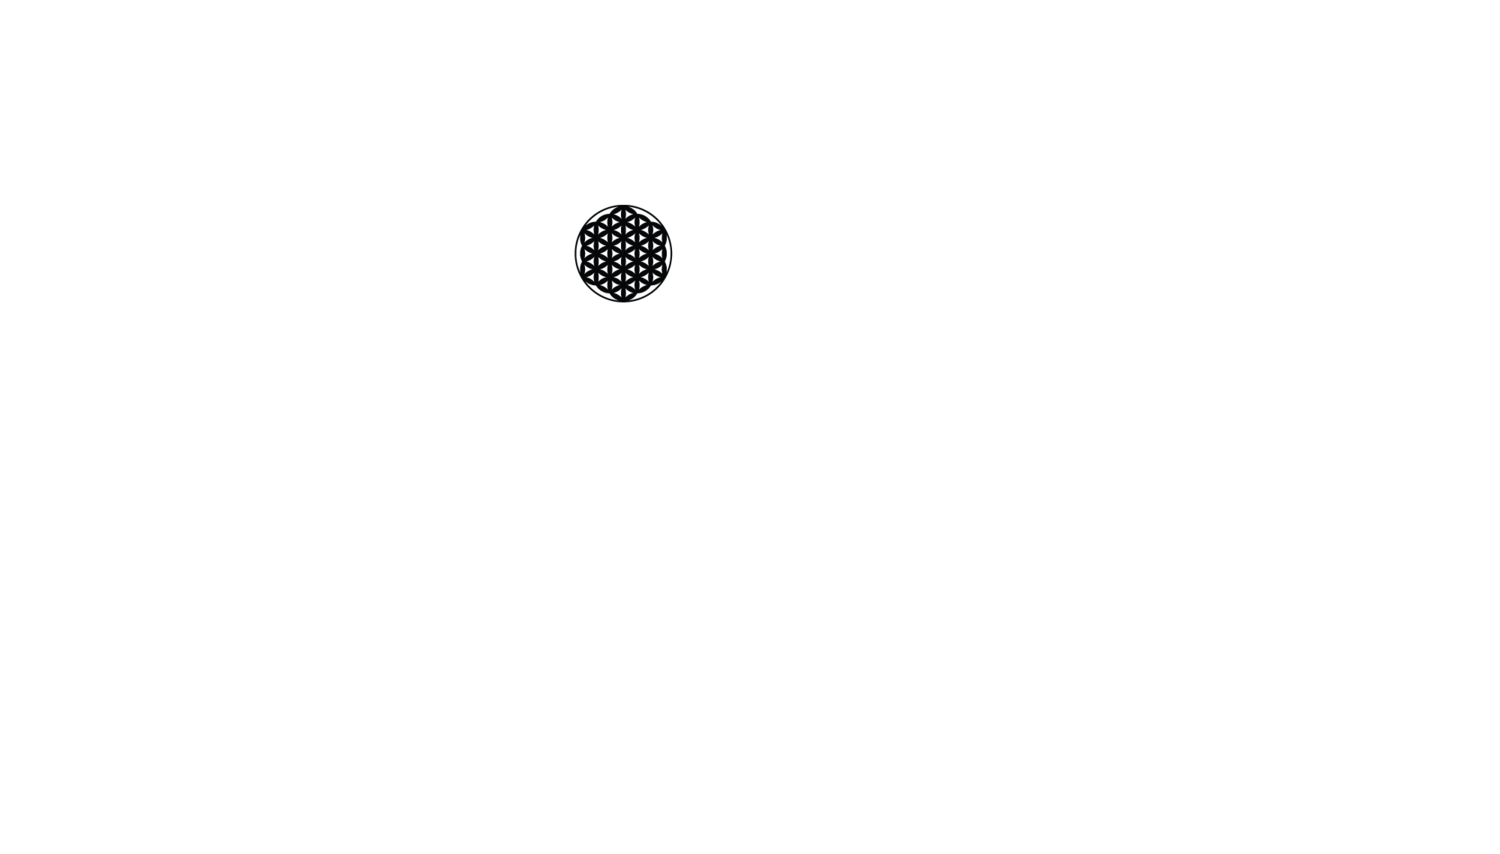 The Conscious Challenge